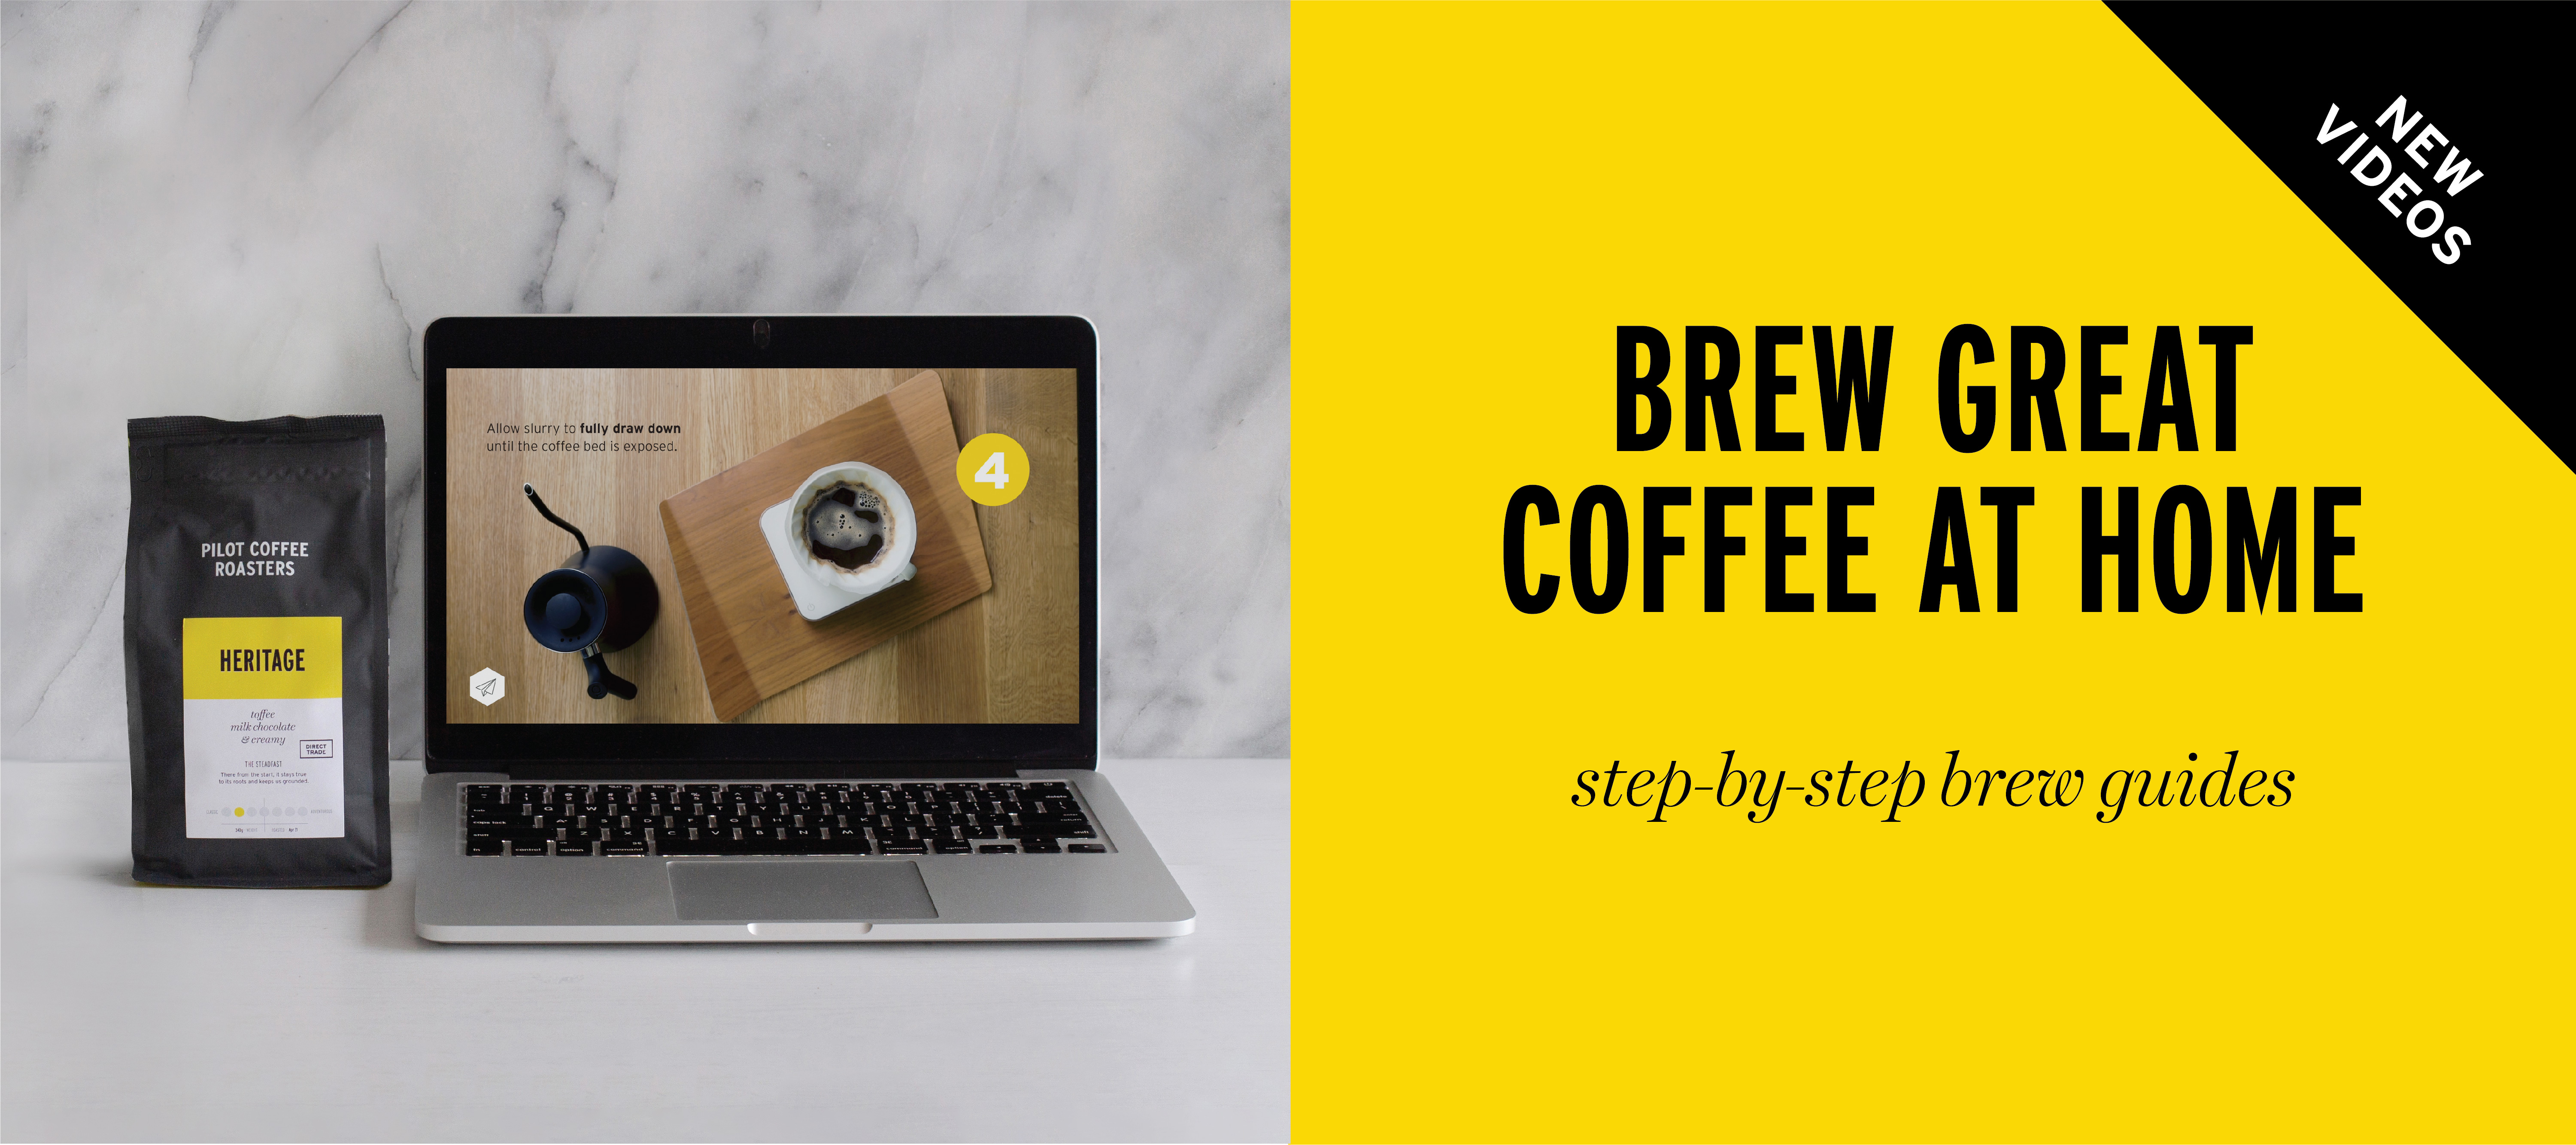 Use Pilot coffee beans and brewing gear to make coffee while working from home, follow our step by step brew guides